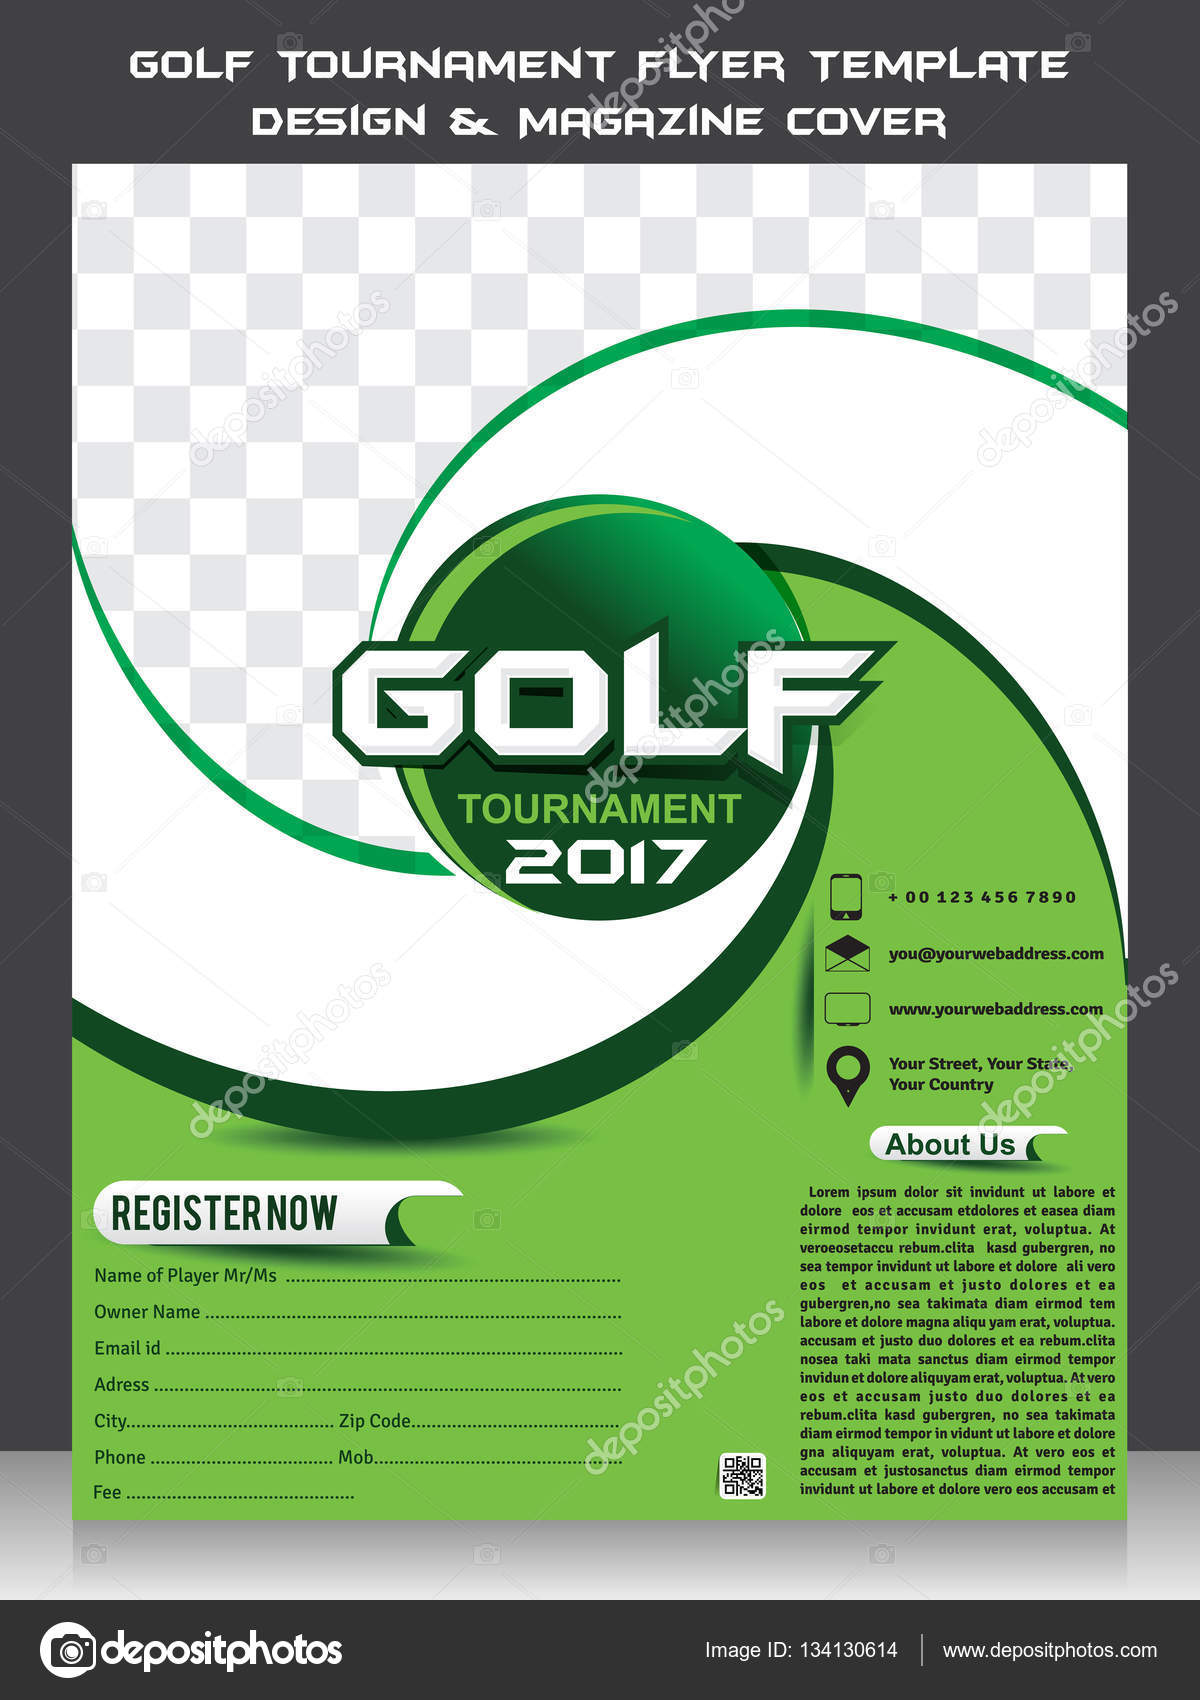 Golf Tournament Flyer Template Design Magazine Cover Stock